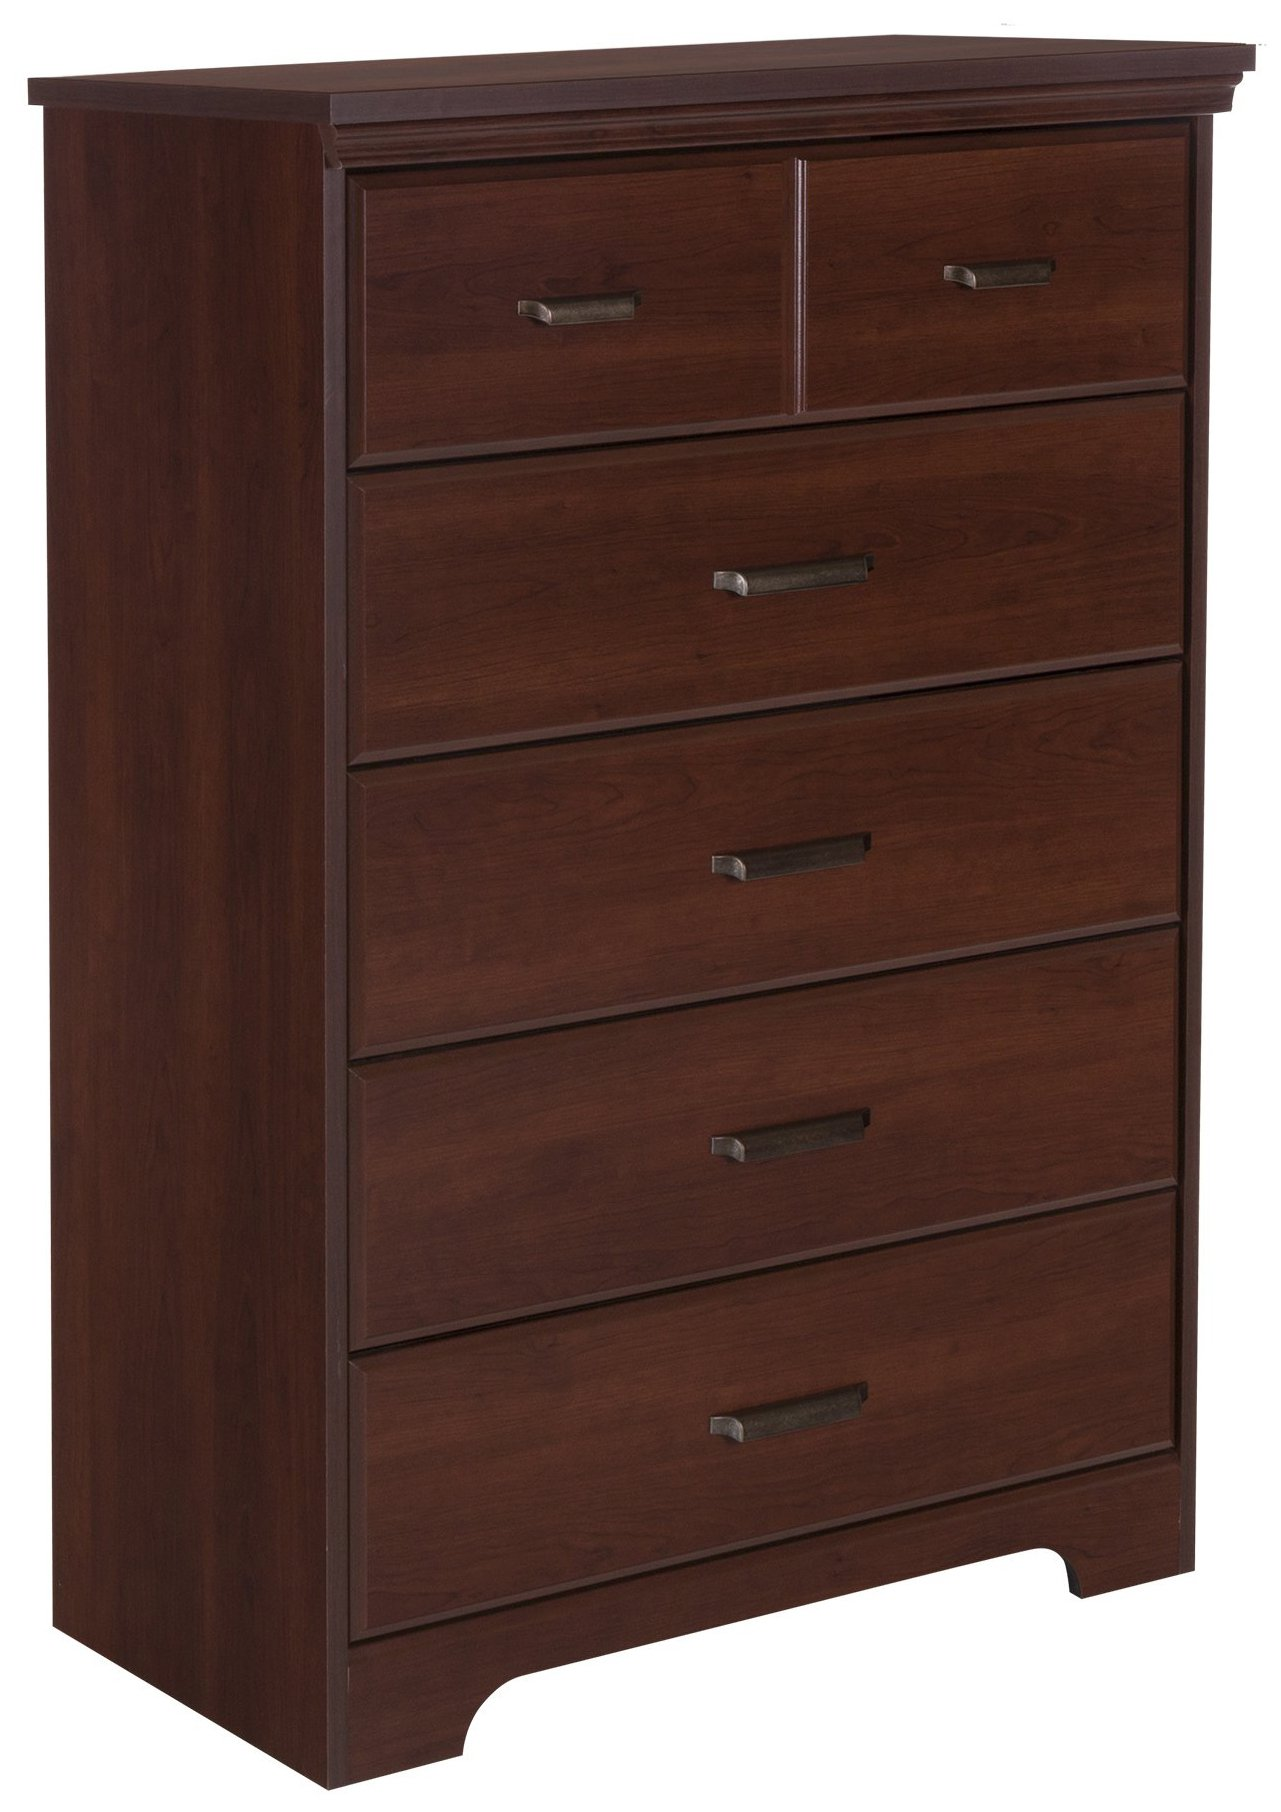 South Shore Versa 5-Drawer Chest, Royal Cherry